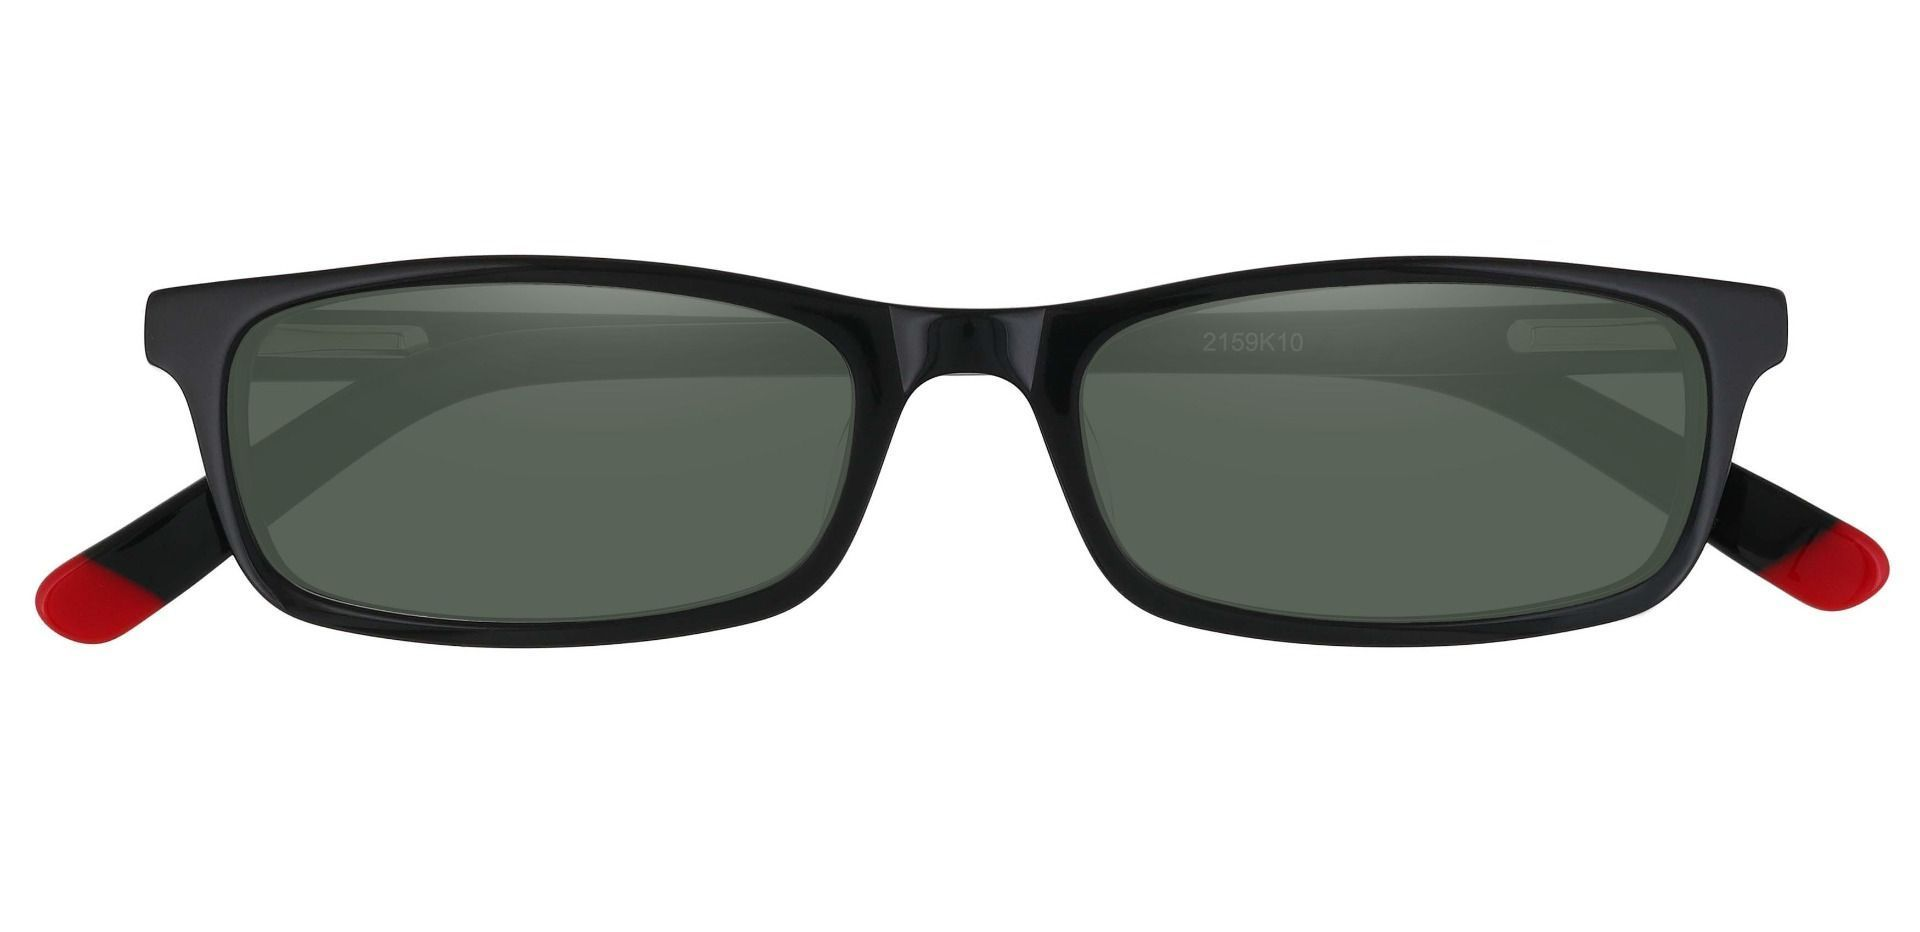 Palisades Rectangle Single Vision Sunglasses - Black Frame With Green Lenses